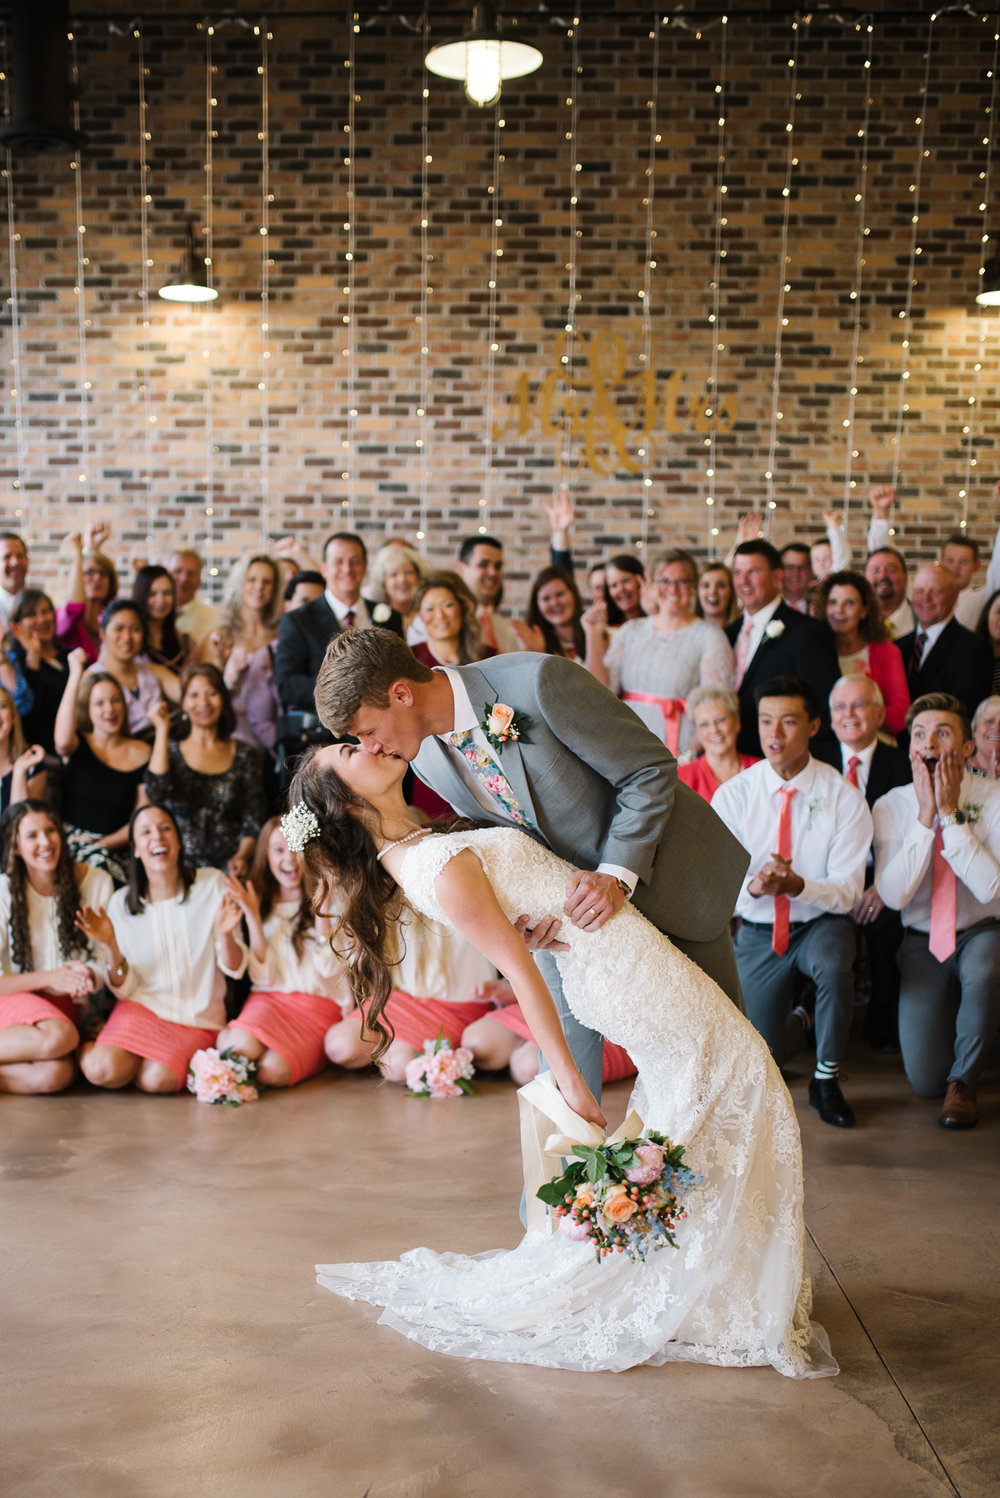 CarriGeorgeWedding_JTP2017_025.jpg